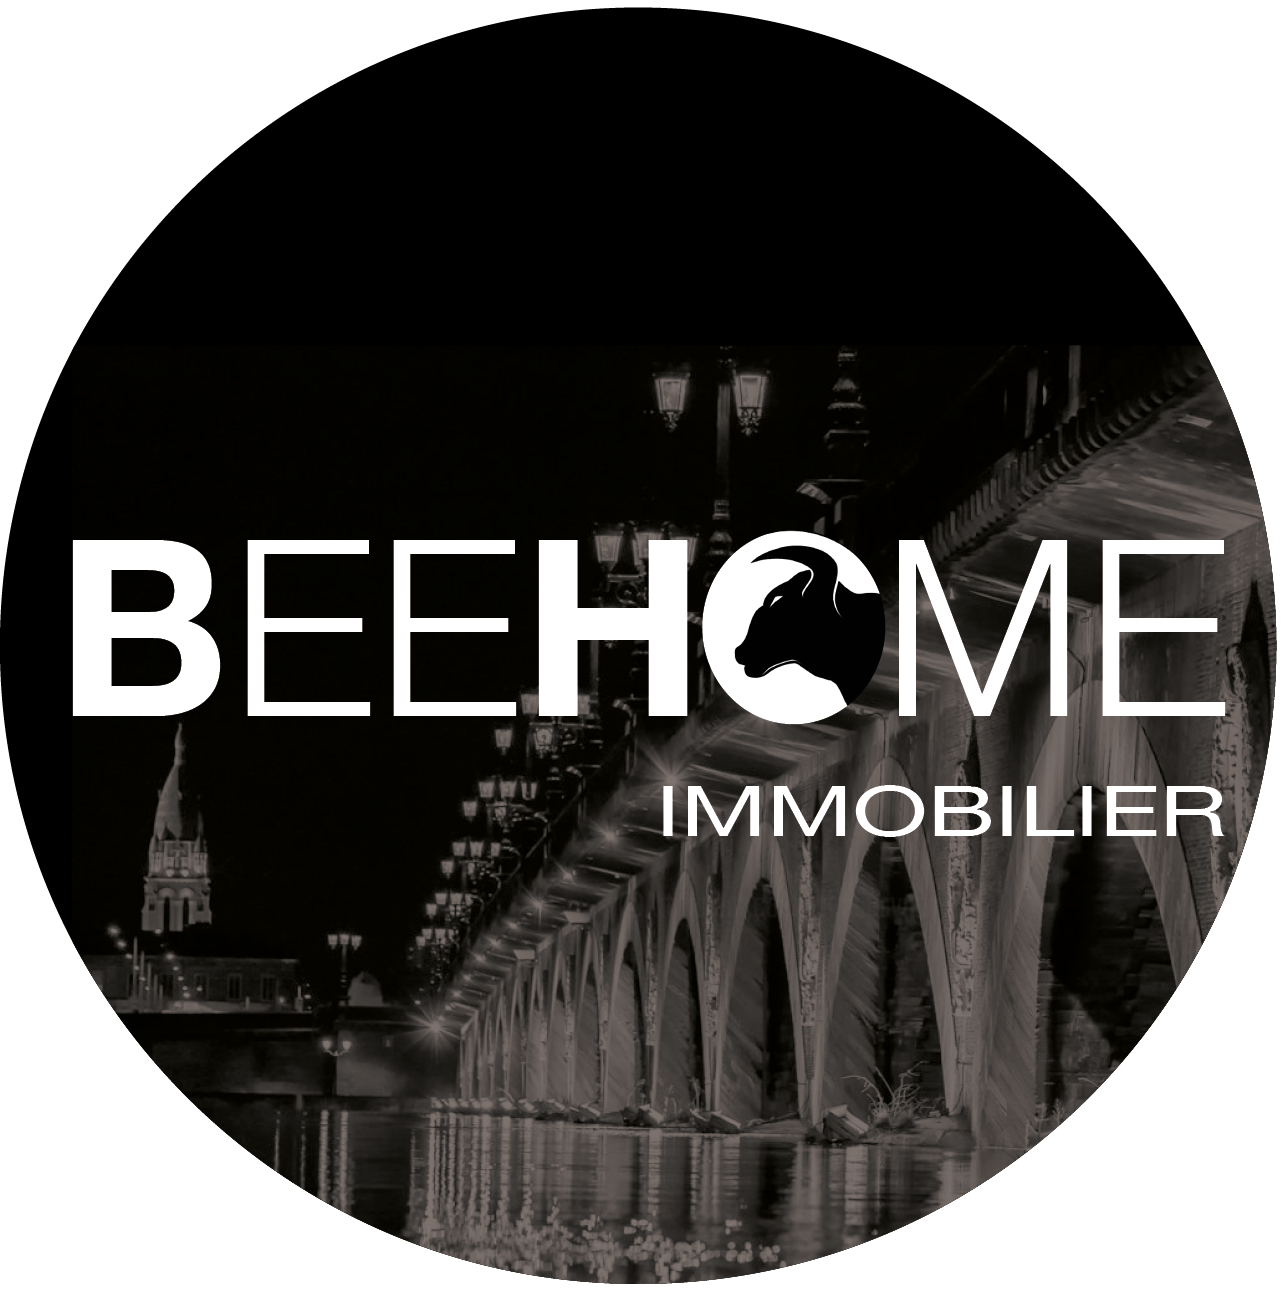 Beehome Immobilier agence immobilière